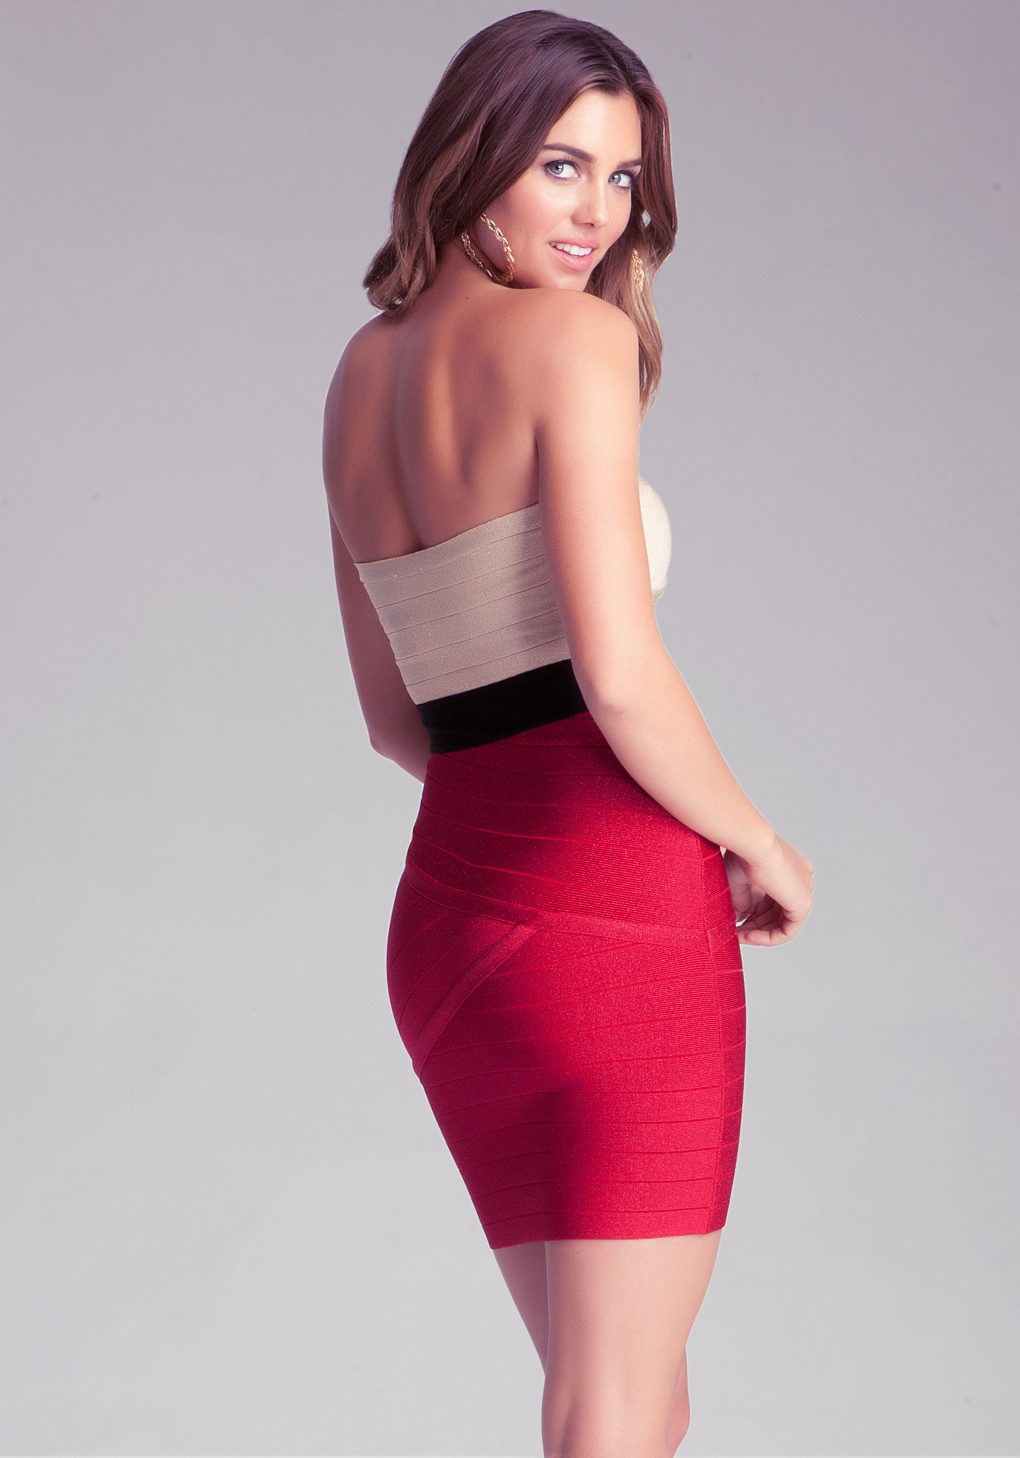 Bebe Strapless Colorblock Dress in Red  Lyst